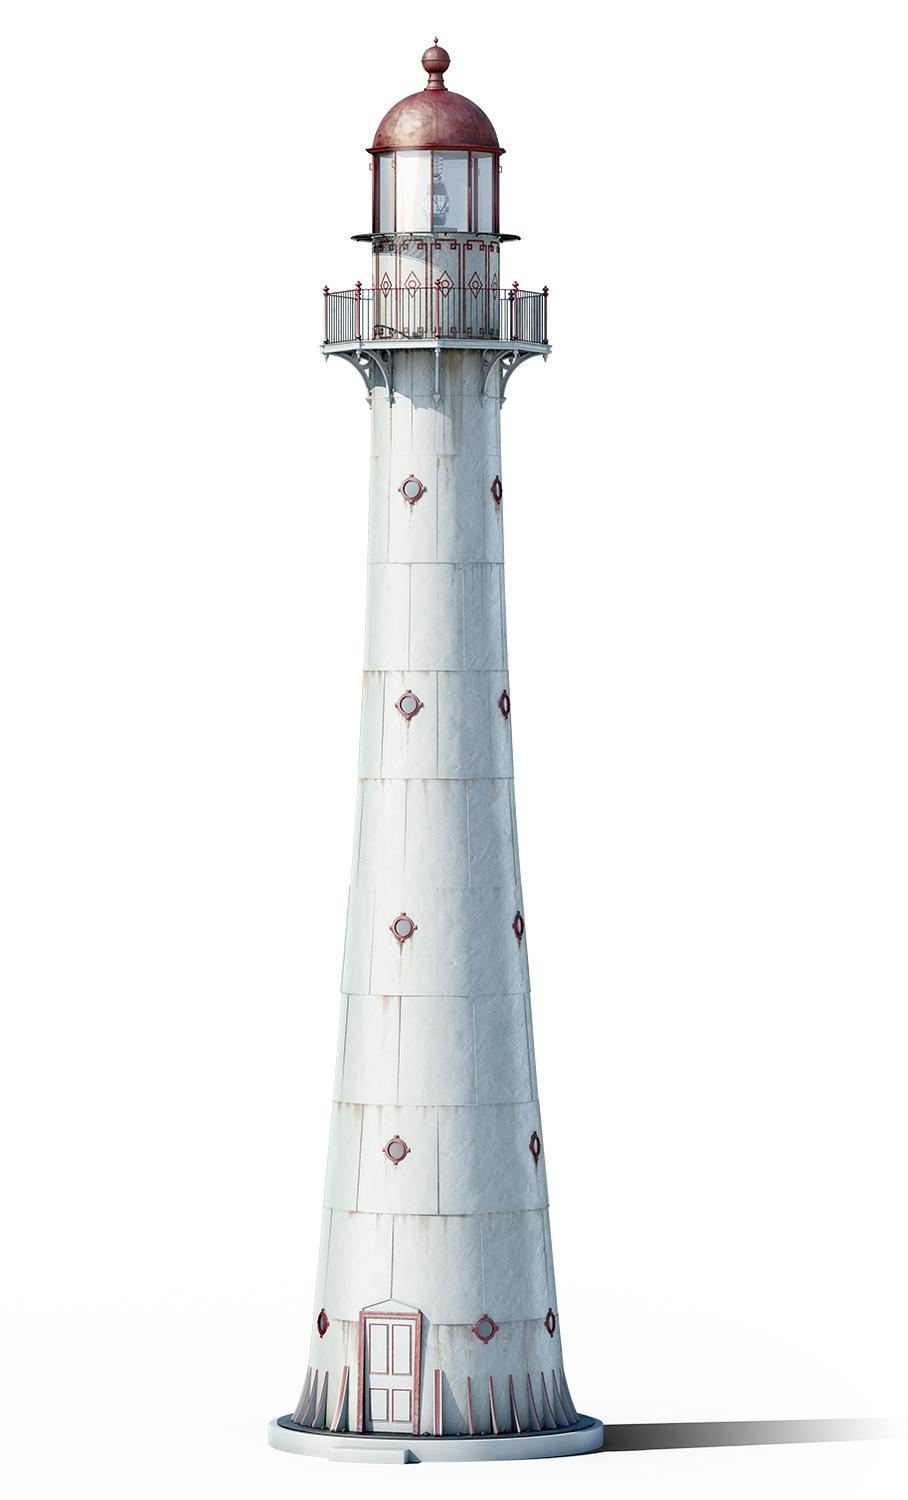 Drawing lighthouses old lighthouse. Kihnu rain saukas d